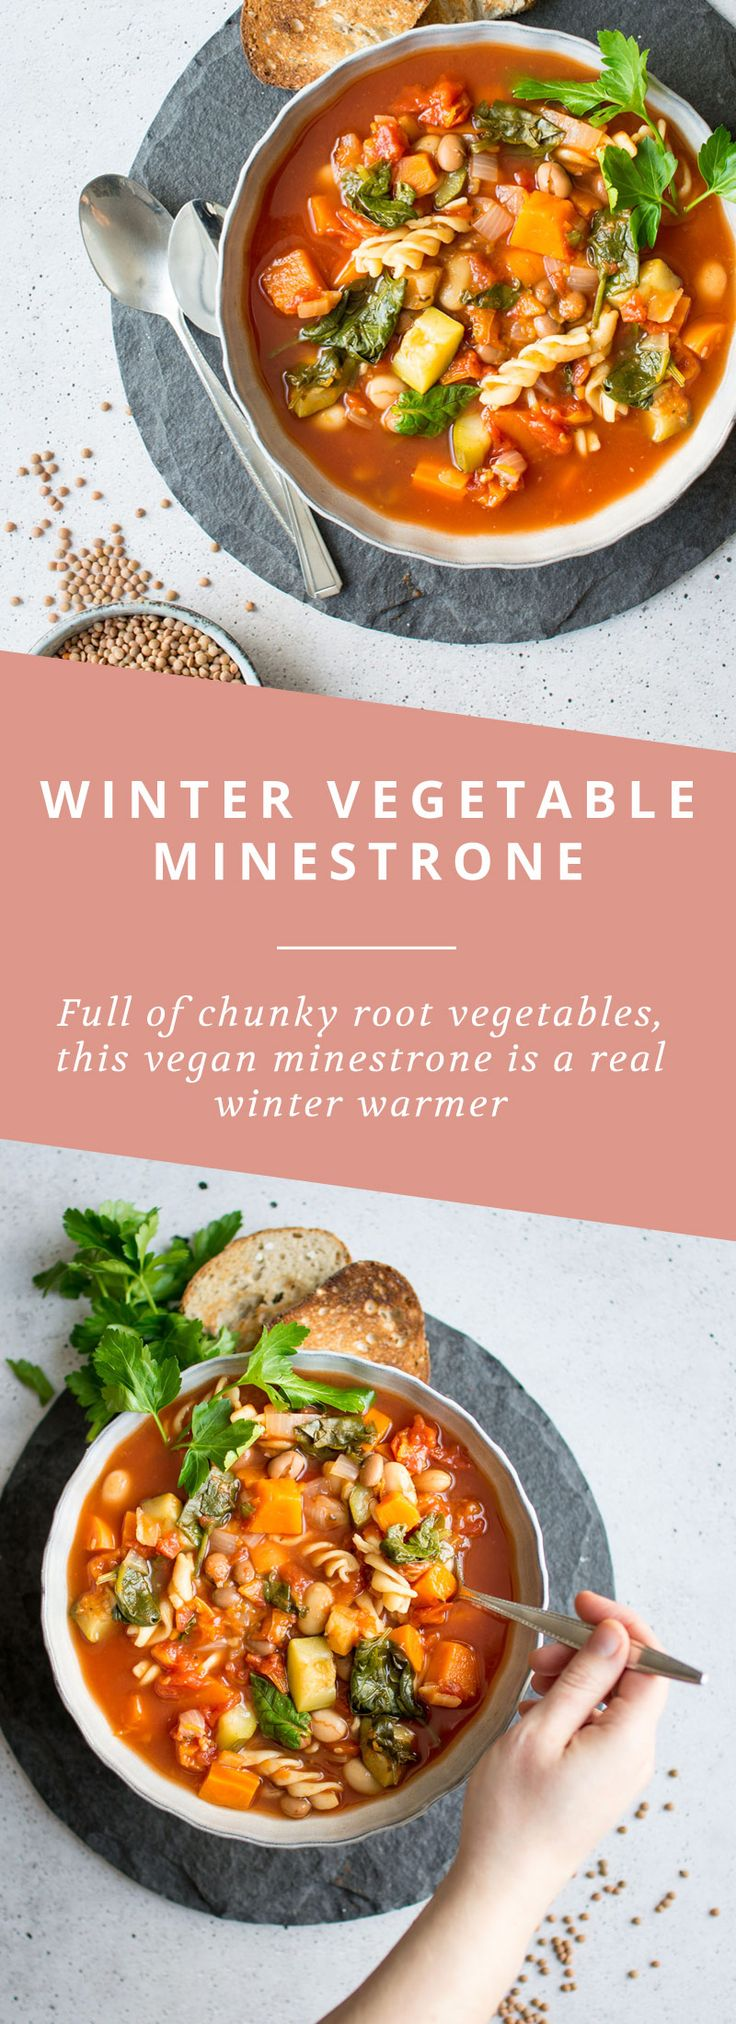 A winter vegetable minestrone soup, full of vitamins and minerals for a hearty winter meal!